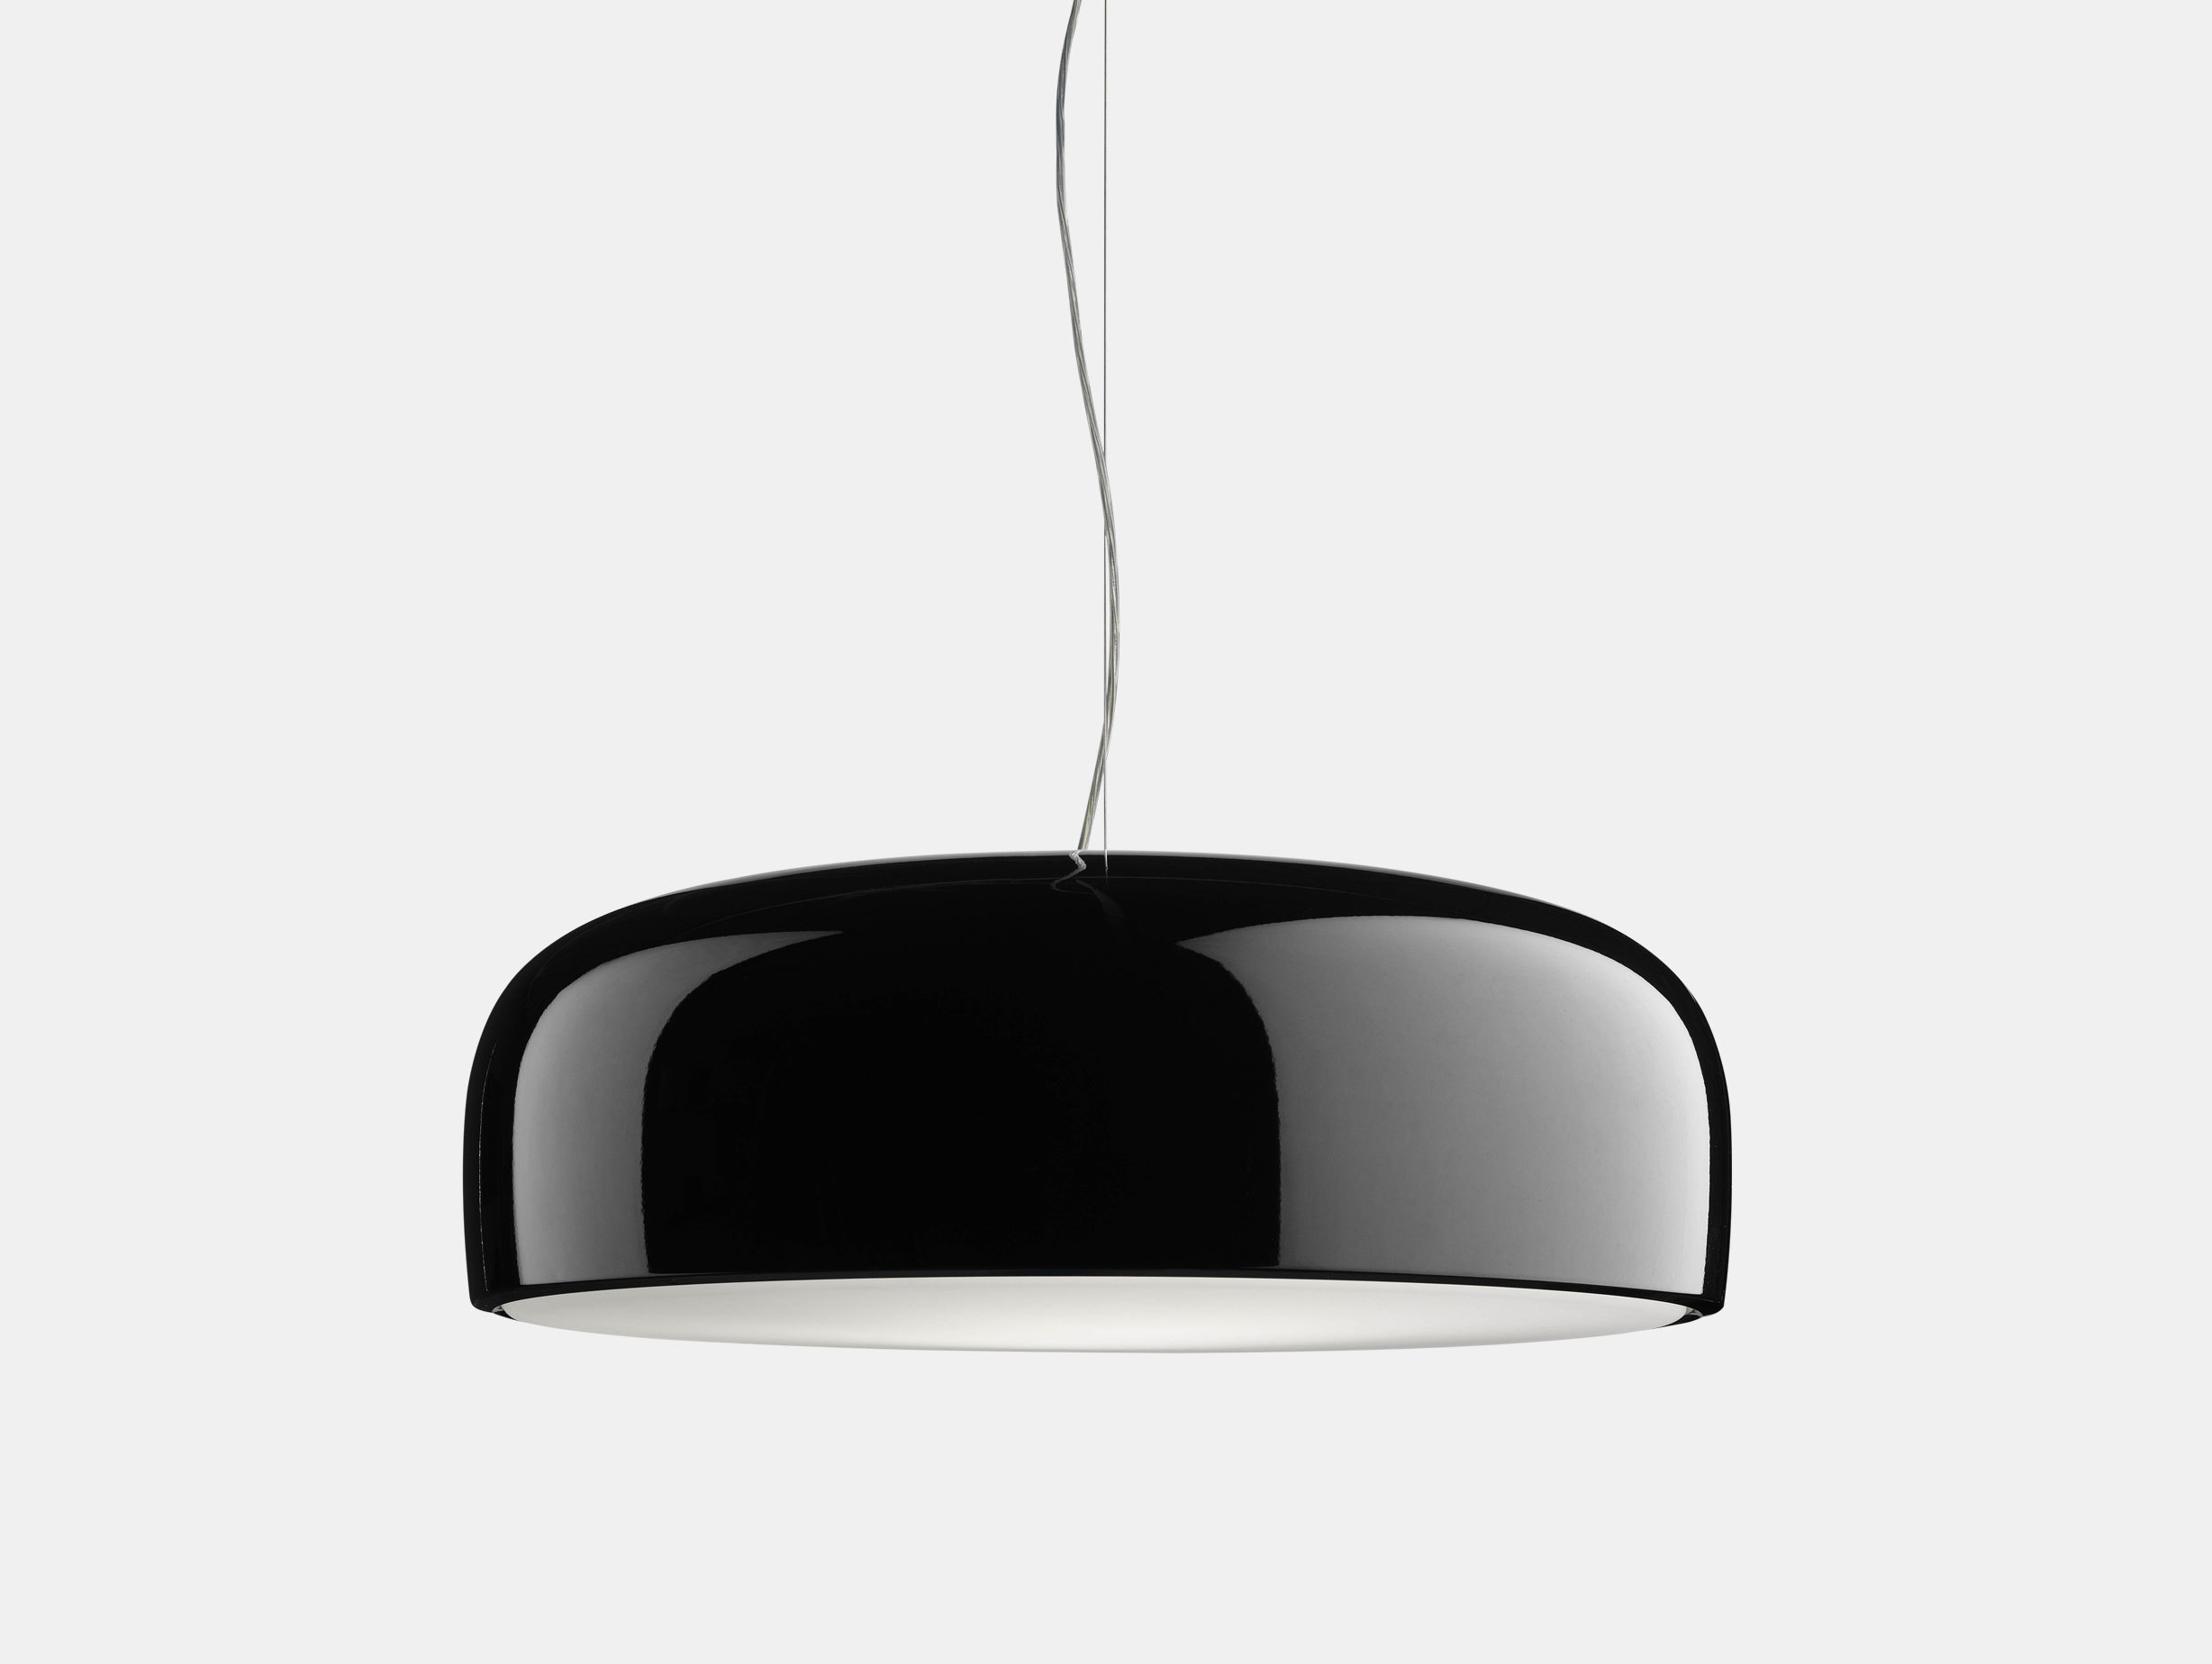 Smithfield Eco LED Suspension Light image 1